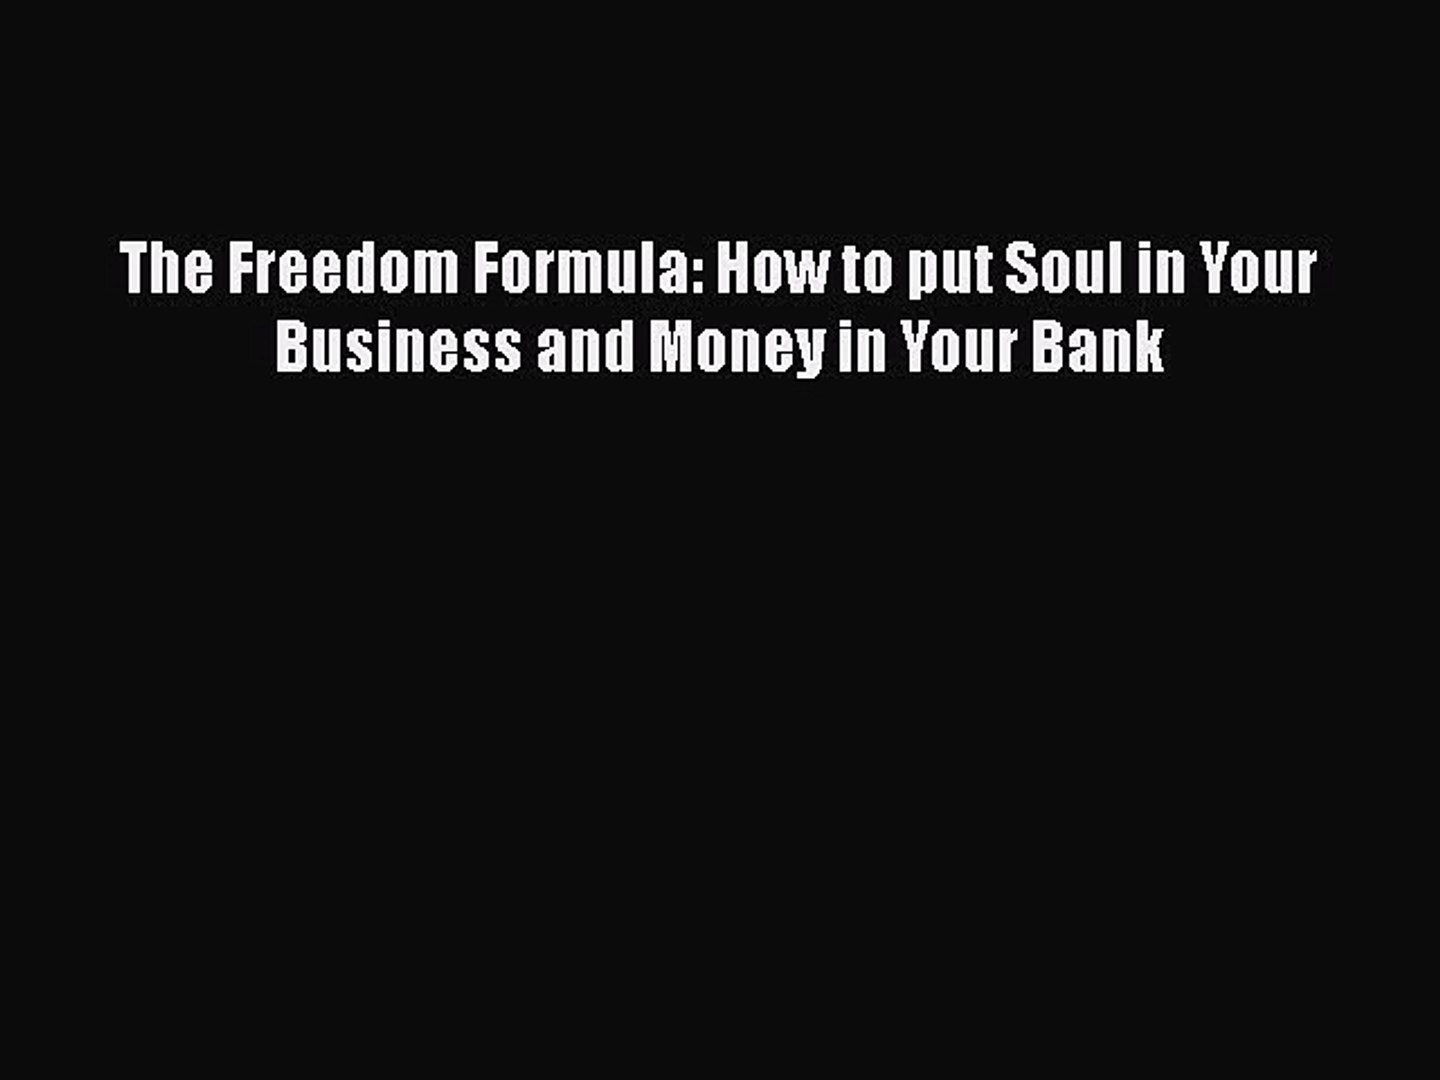 [PDF Download] The Freedom Formula: How to put Soul in Your Business and Money in Your Bank